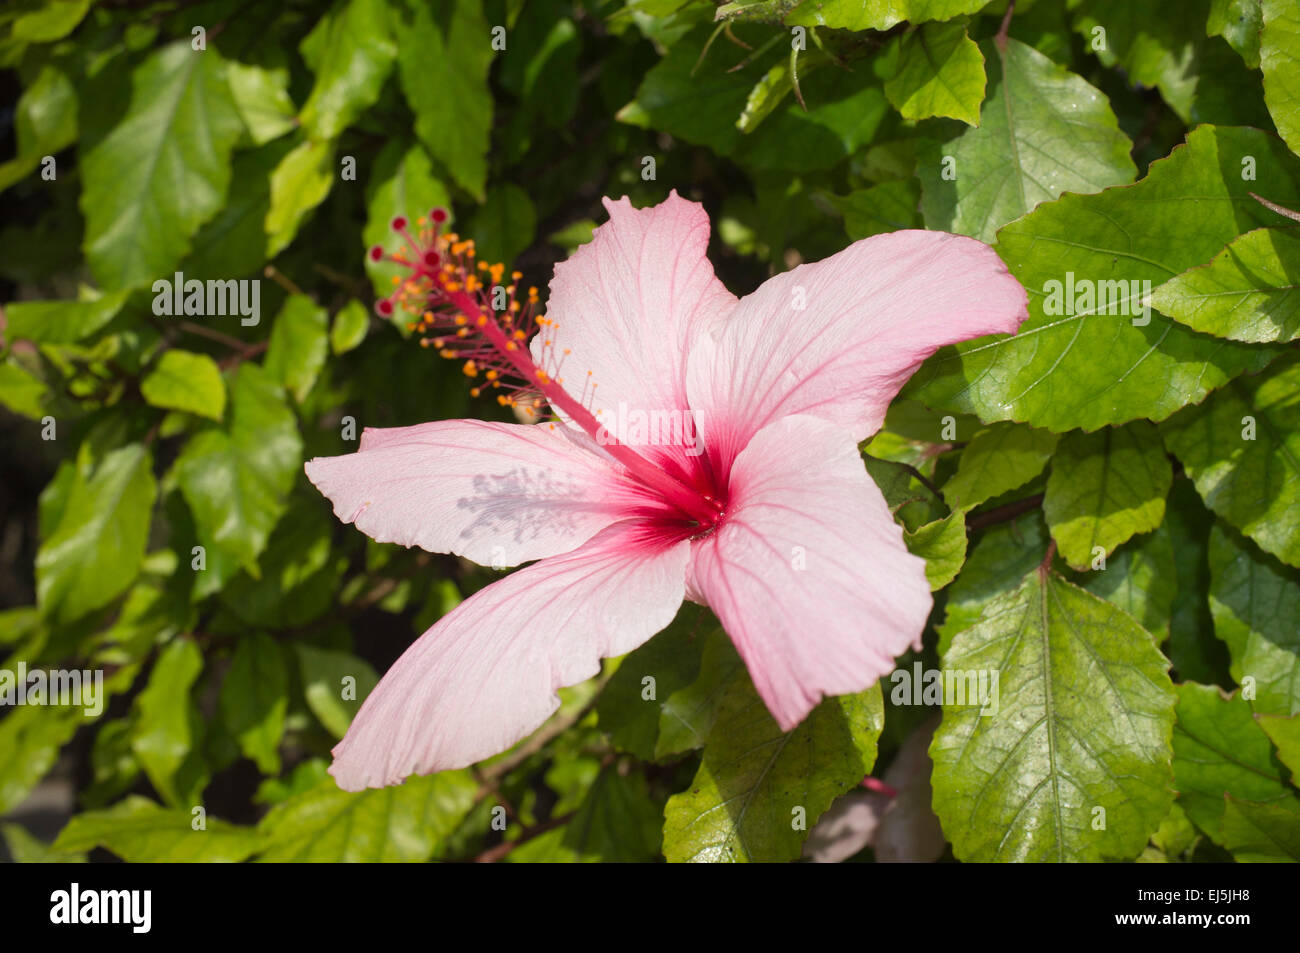 Adelaide Australia 22nd March 2015 Australian Hibiscus Flower